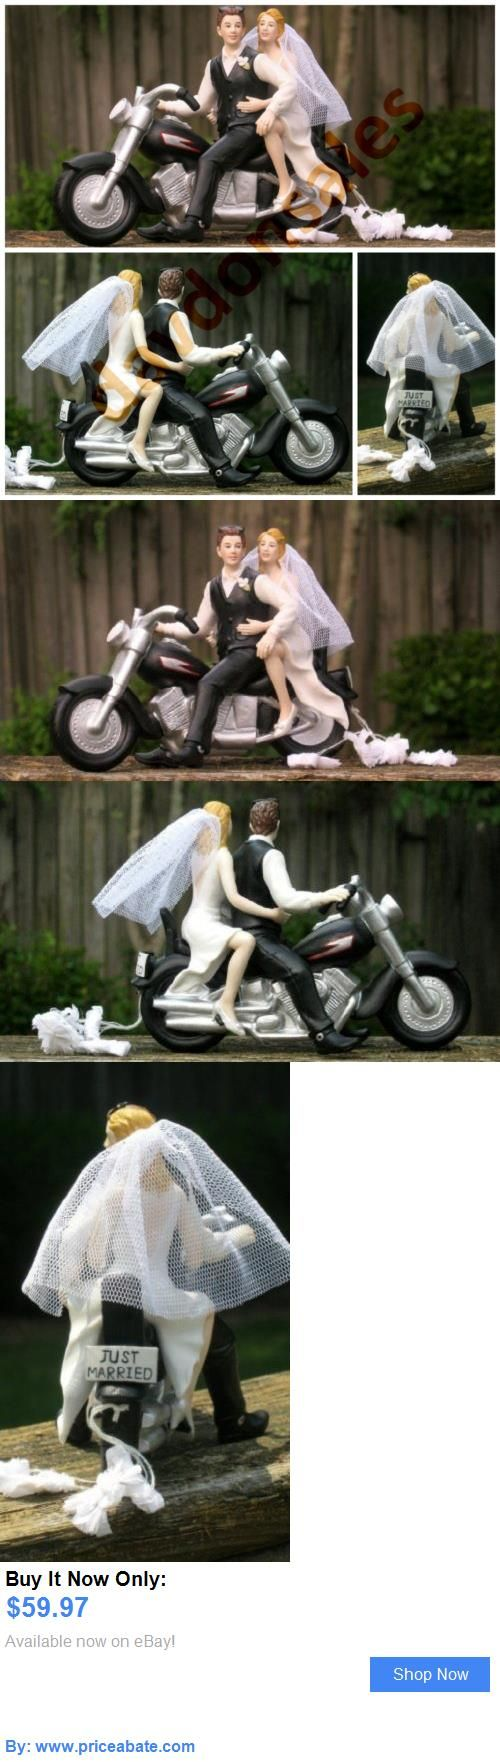 Wedding Cakes Toppers: Motorcycle Biker Wedding Cake Topper Harley Davidson Groom Bride Couple Gift New BUY IT NOW ONLY: $59.97 #priceabateWeddingCakesToppers OR #priceabate